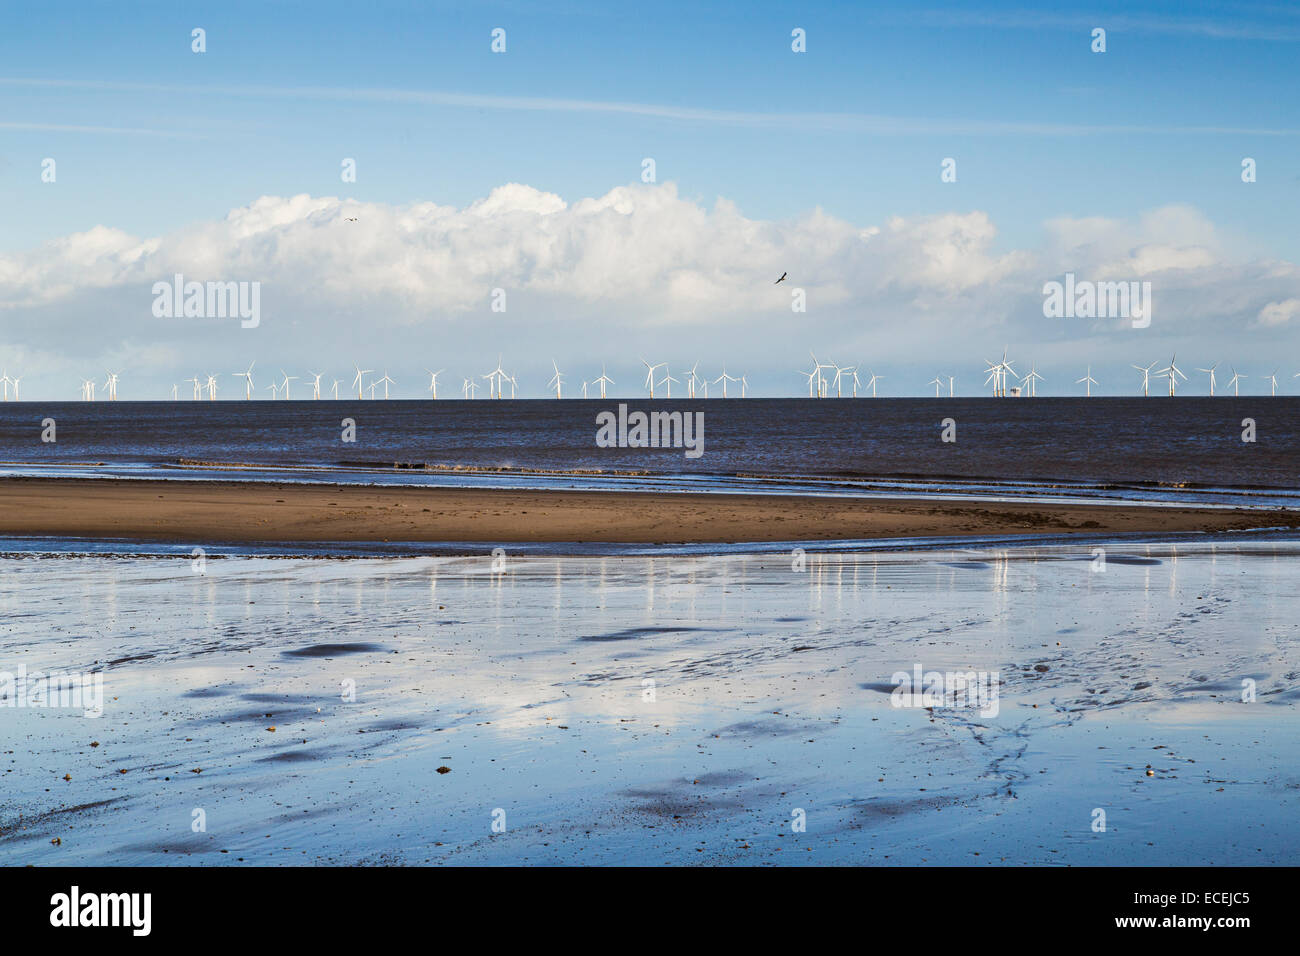 A wind farm on the horizon at the seaside resort of Skegness, UK - Stock Image